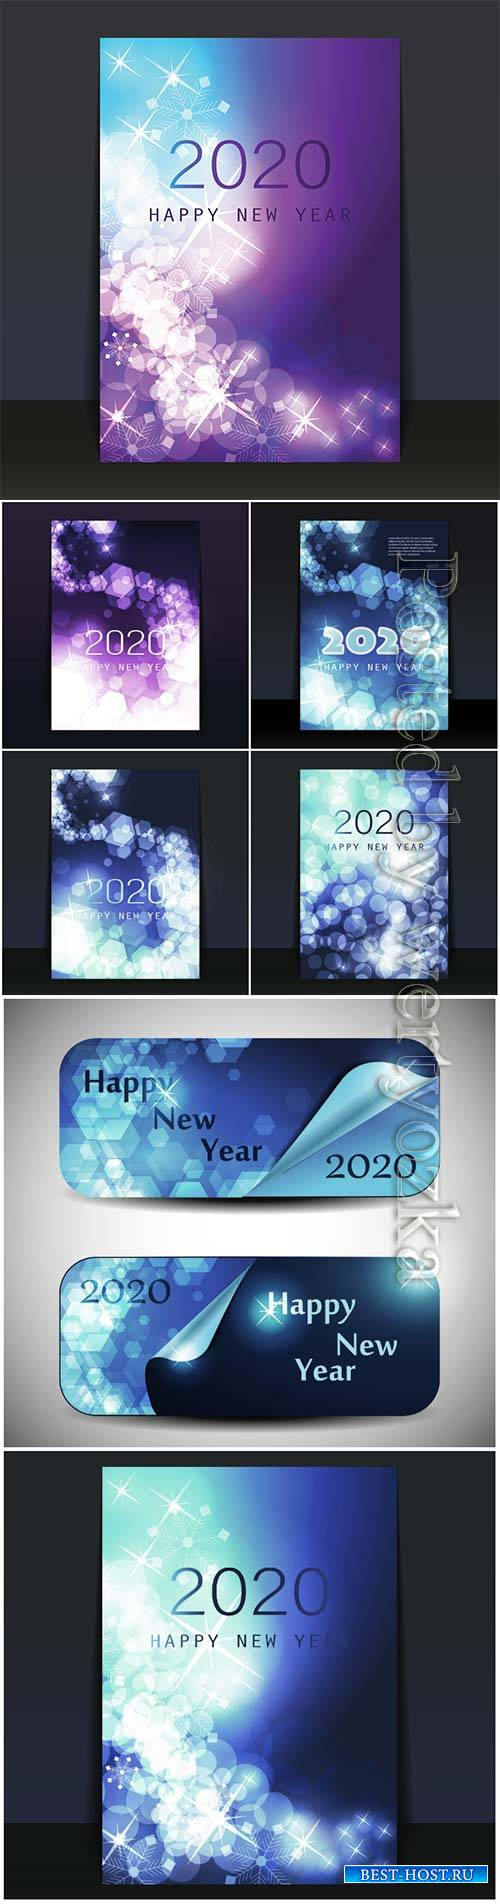 New Year Card 2020, flyer or cover vector design